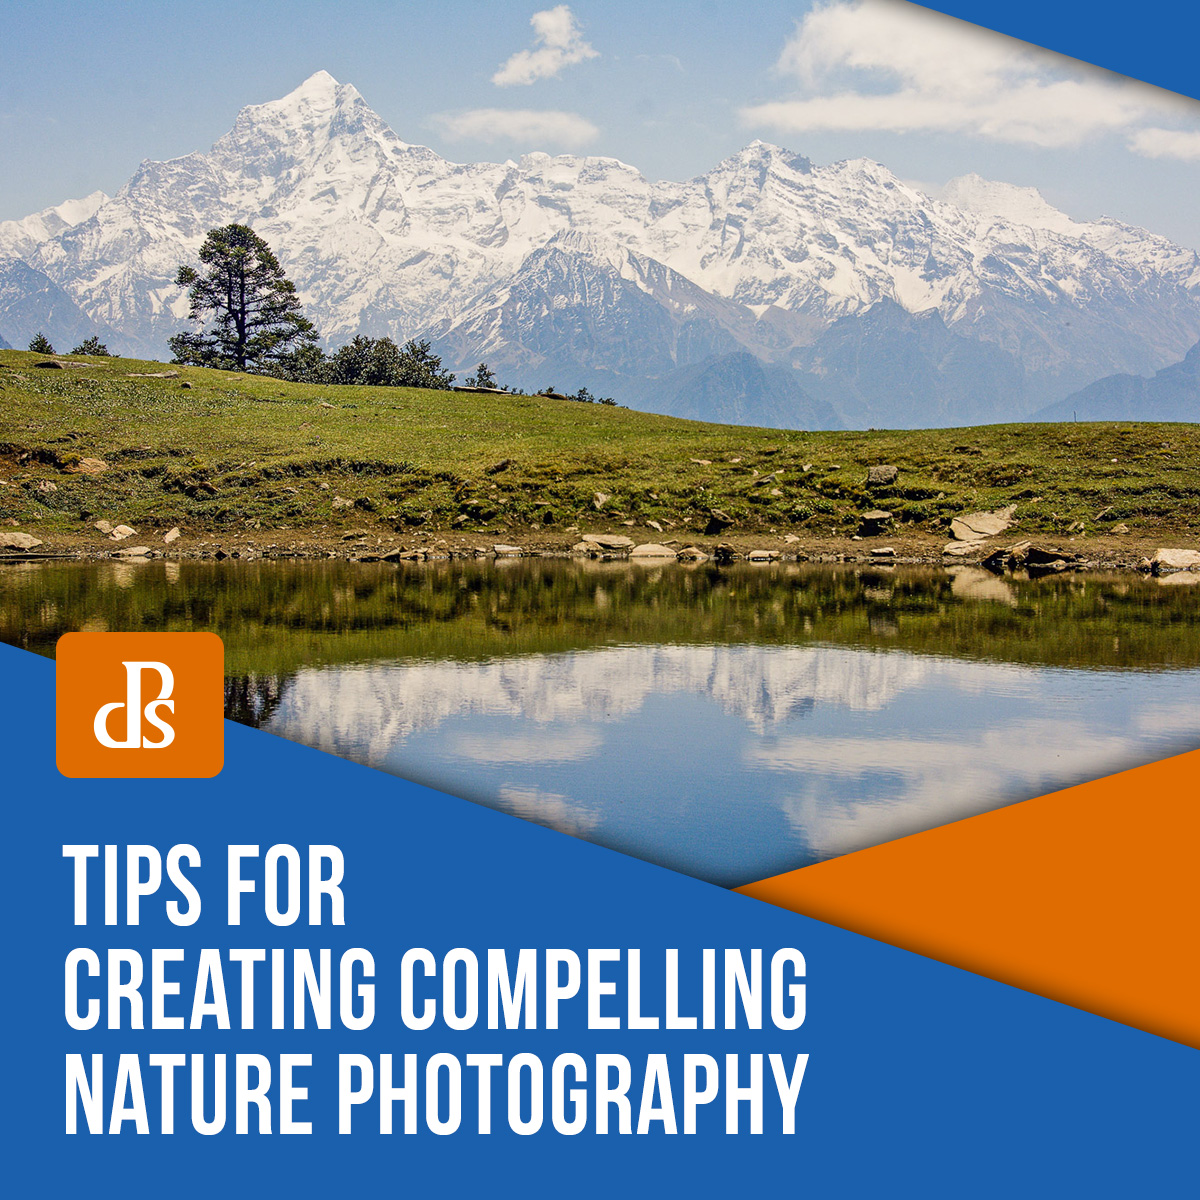 tips-for-creating-compelling-nature-photography